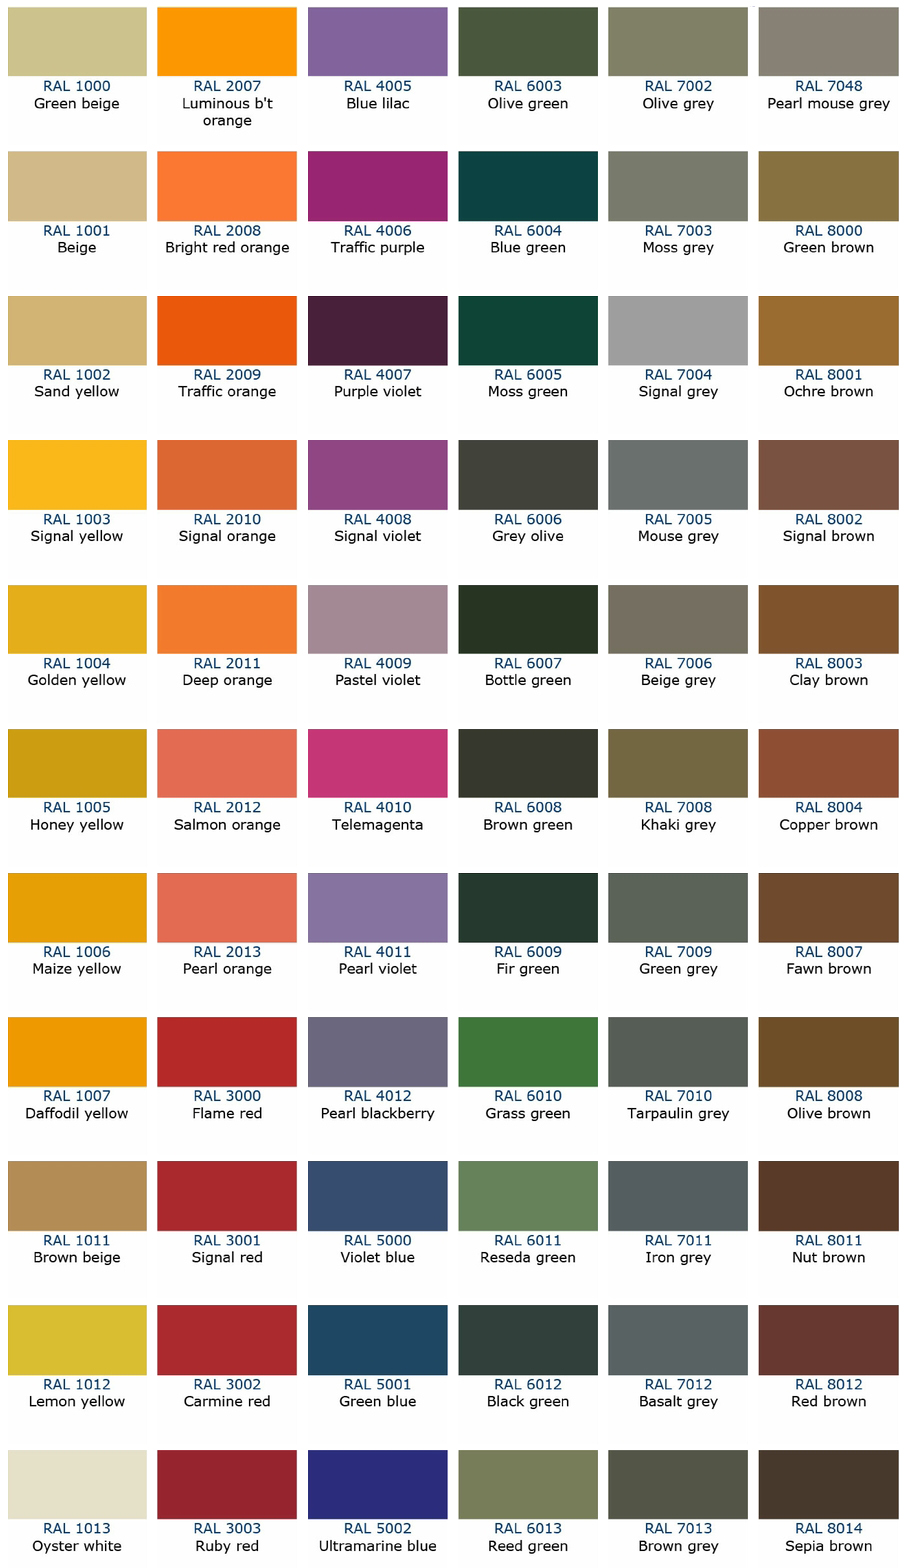 Sherwin williams ral color chart image collections free any sherwin williams ral color chart gallery free any chart examples sherwin williams ral color chart gallery nvjuhfo Choice Image